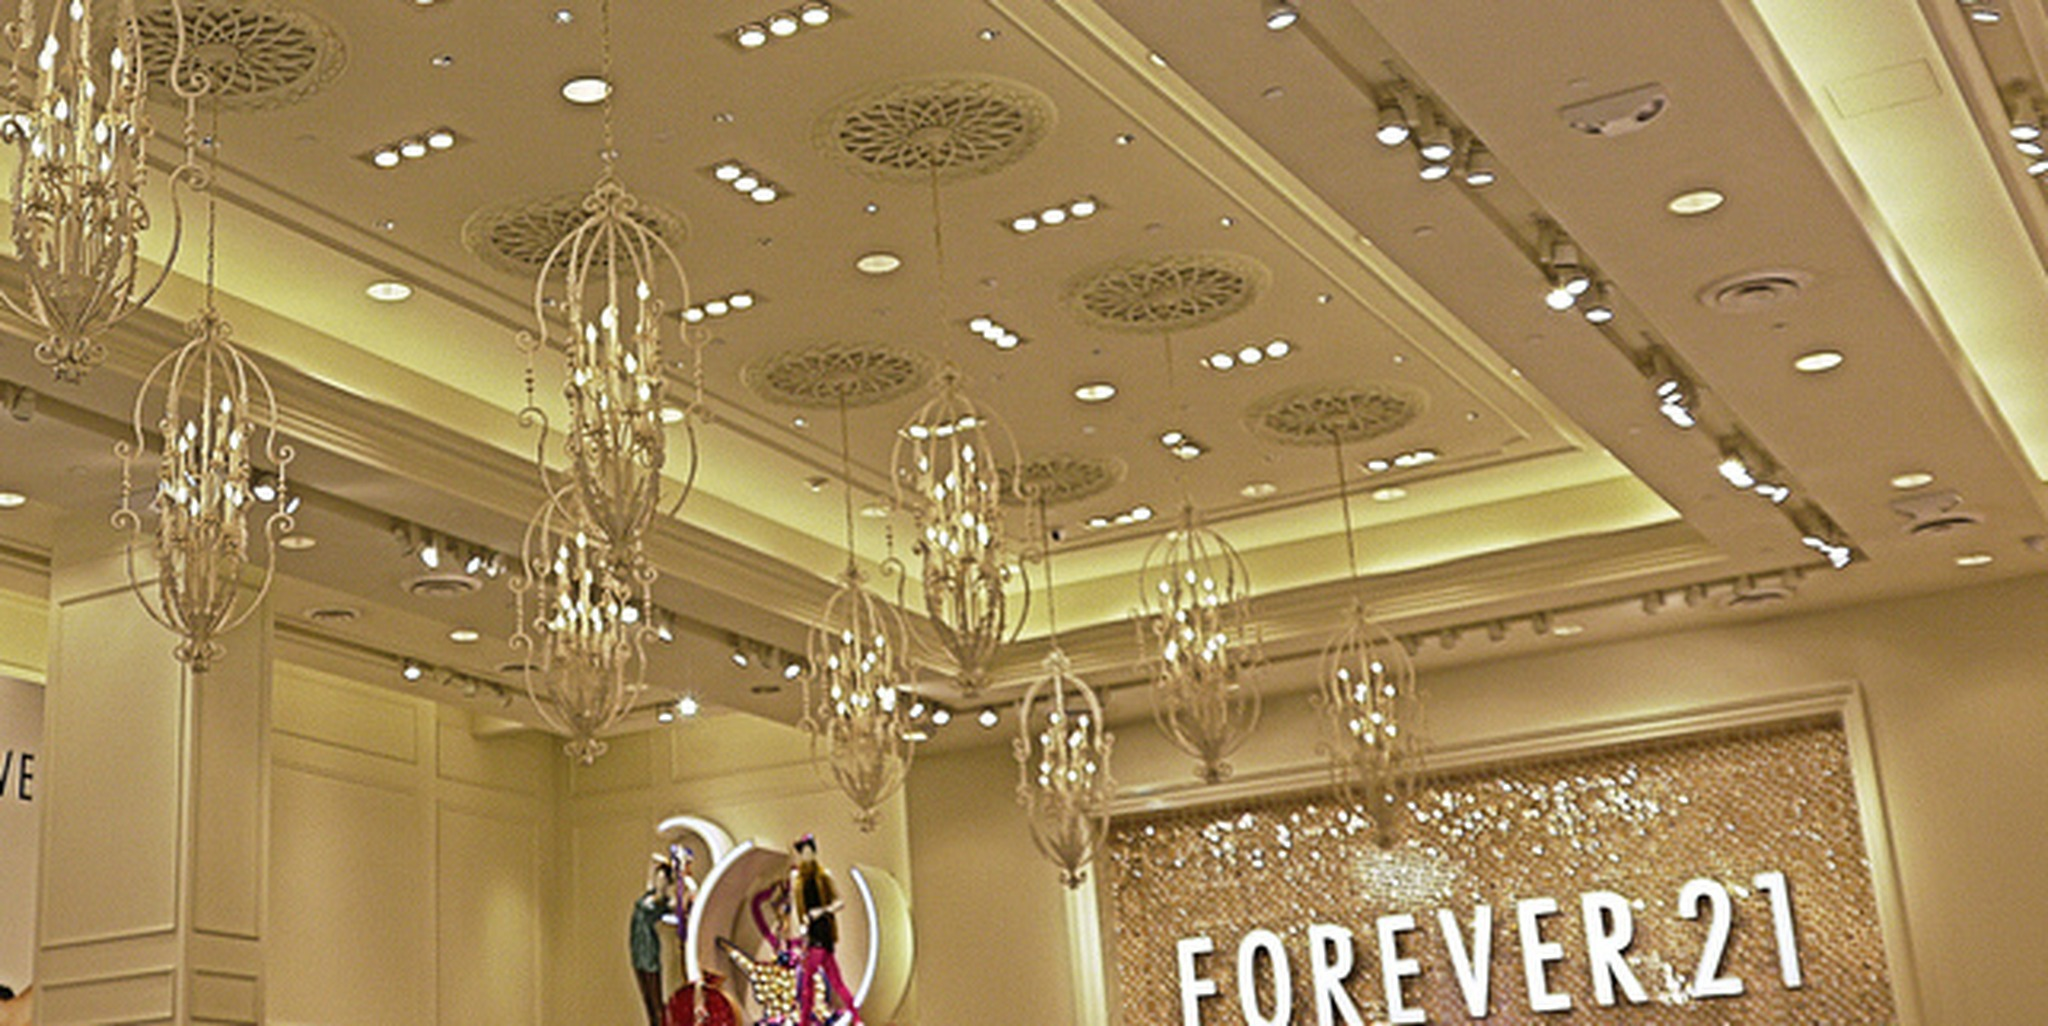 Forever 21 store | Flickr - Photo Sharing!